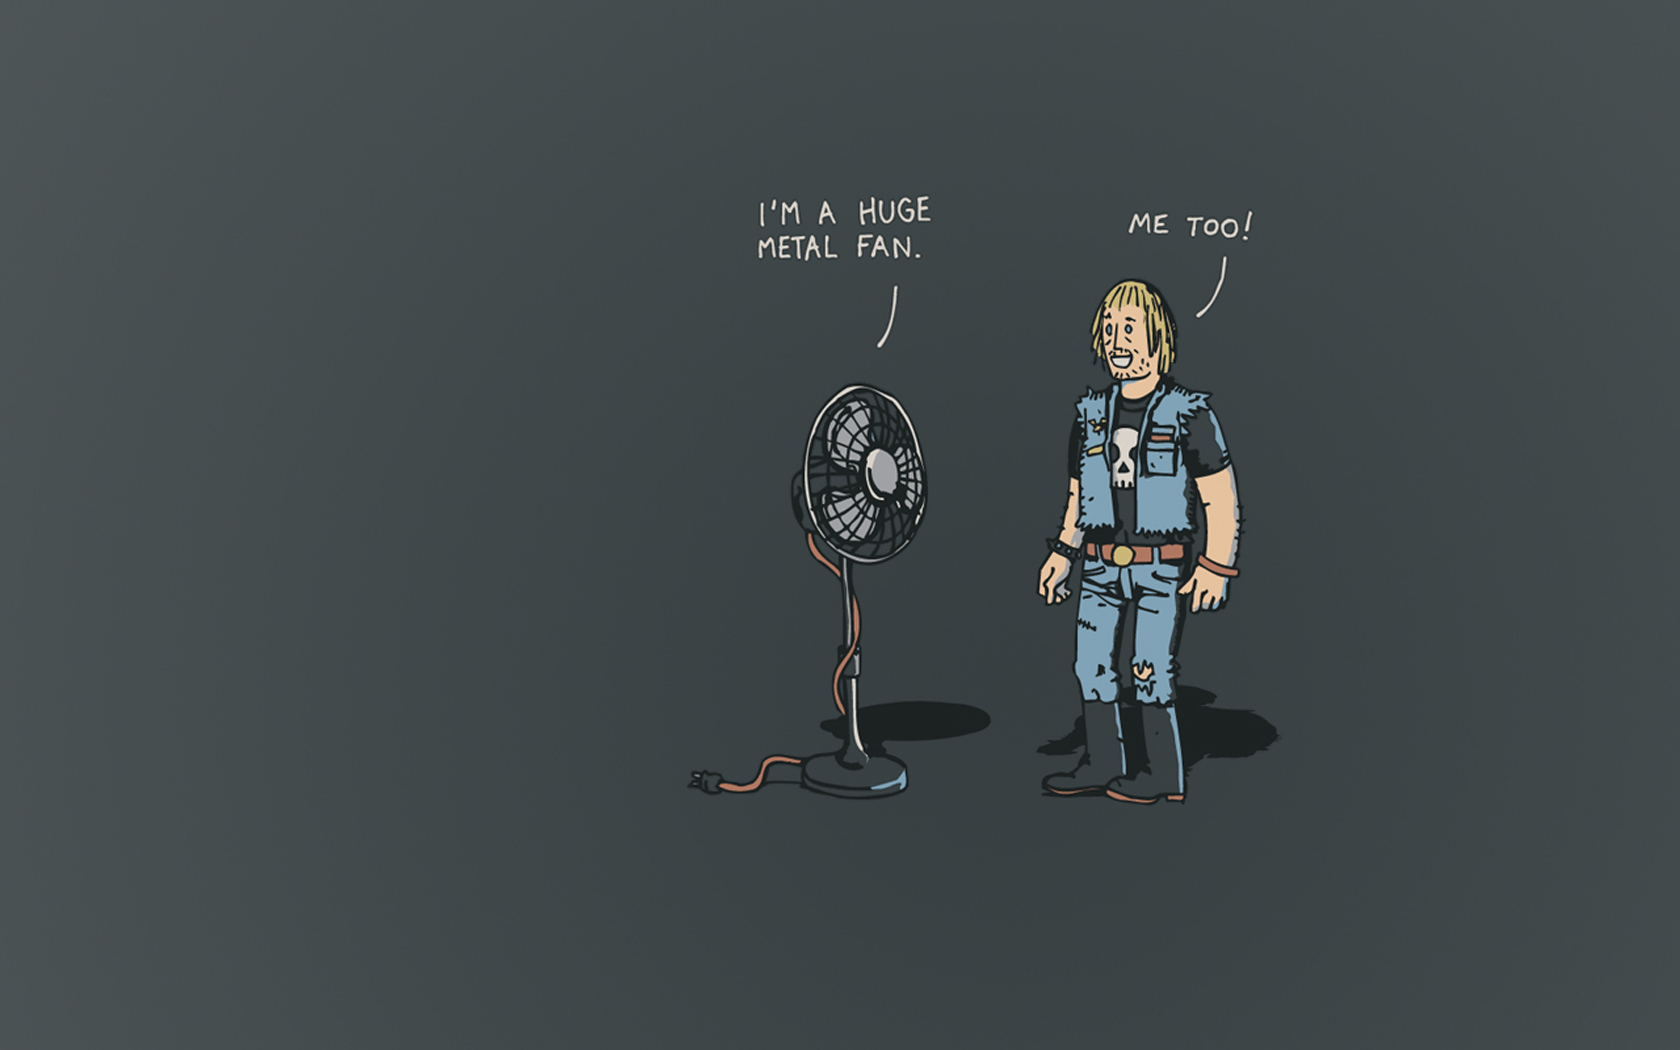 Metal Fan Funny Joke   Wallpaper 30683 1680x1050